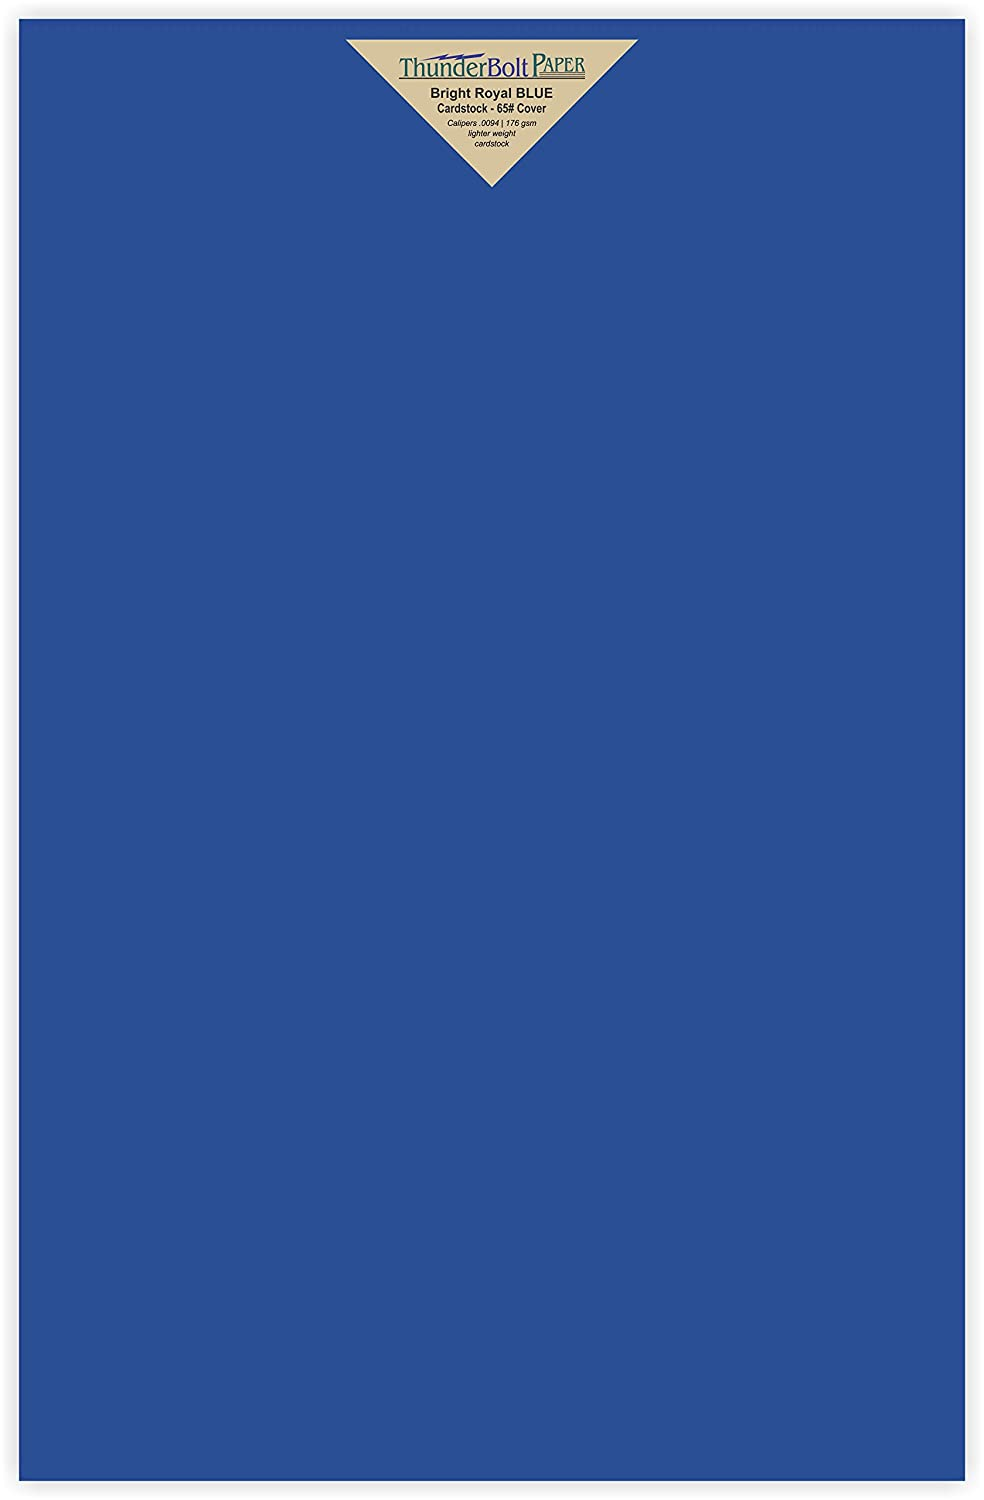 Gold color cardstock paper 5x7 - 25 Bright Royal Blue 65 Cardstock Paper 12 X 18 12x18 Inches